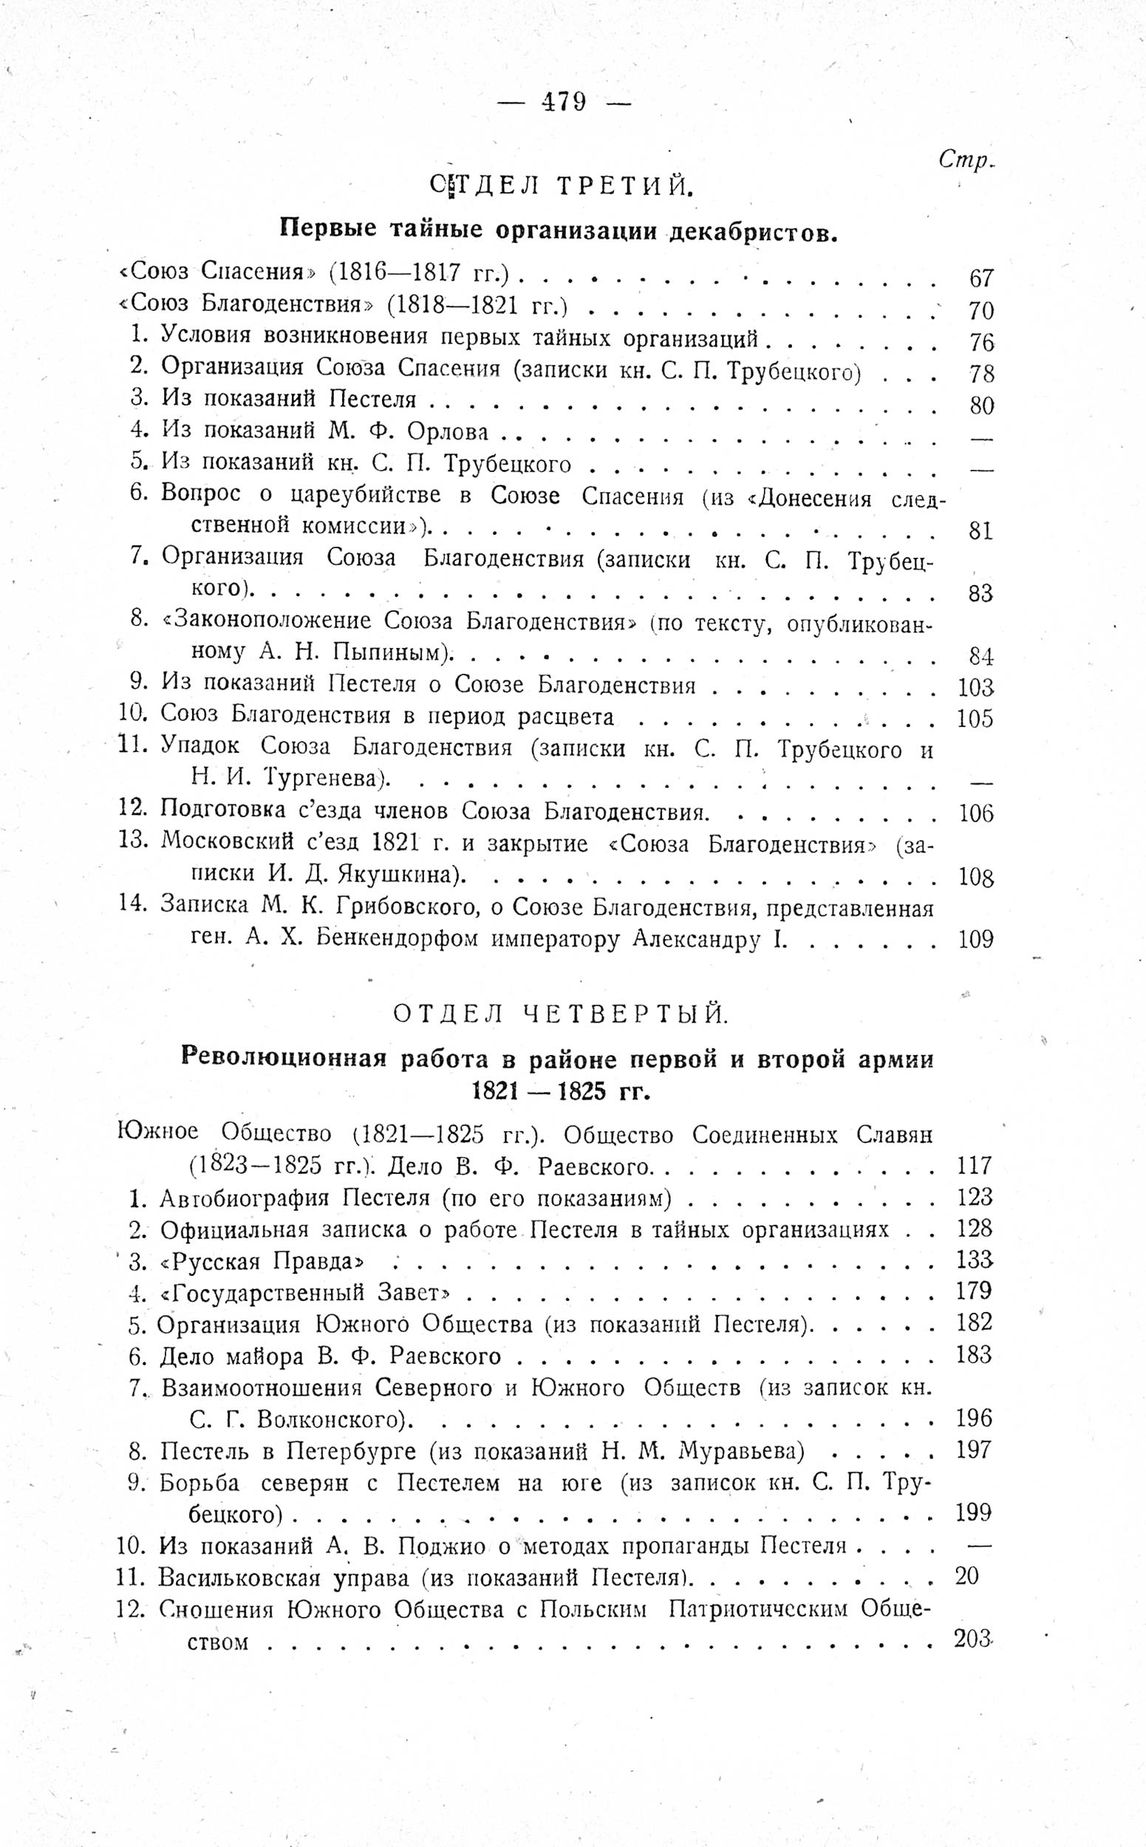 http://elib.shpl.ru/pages/626062/zooms/7